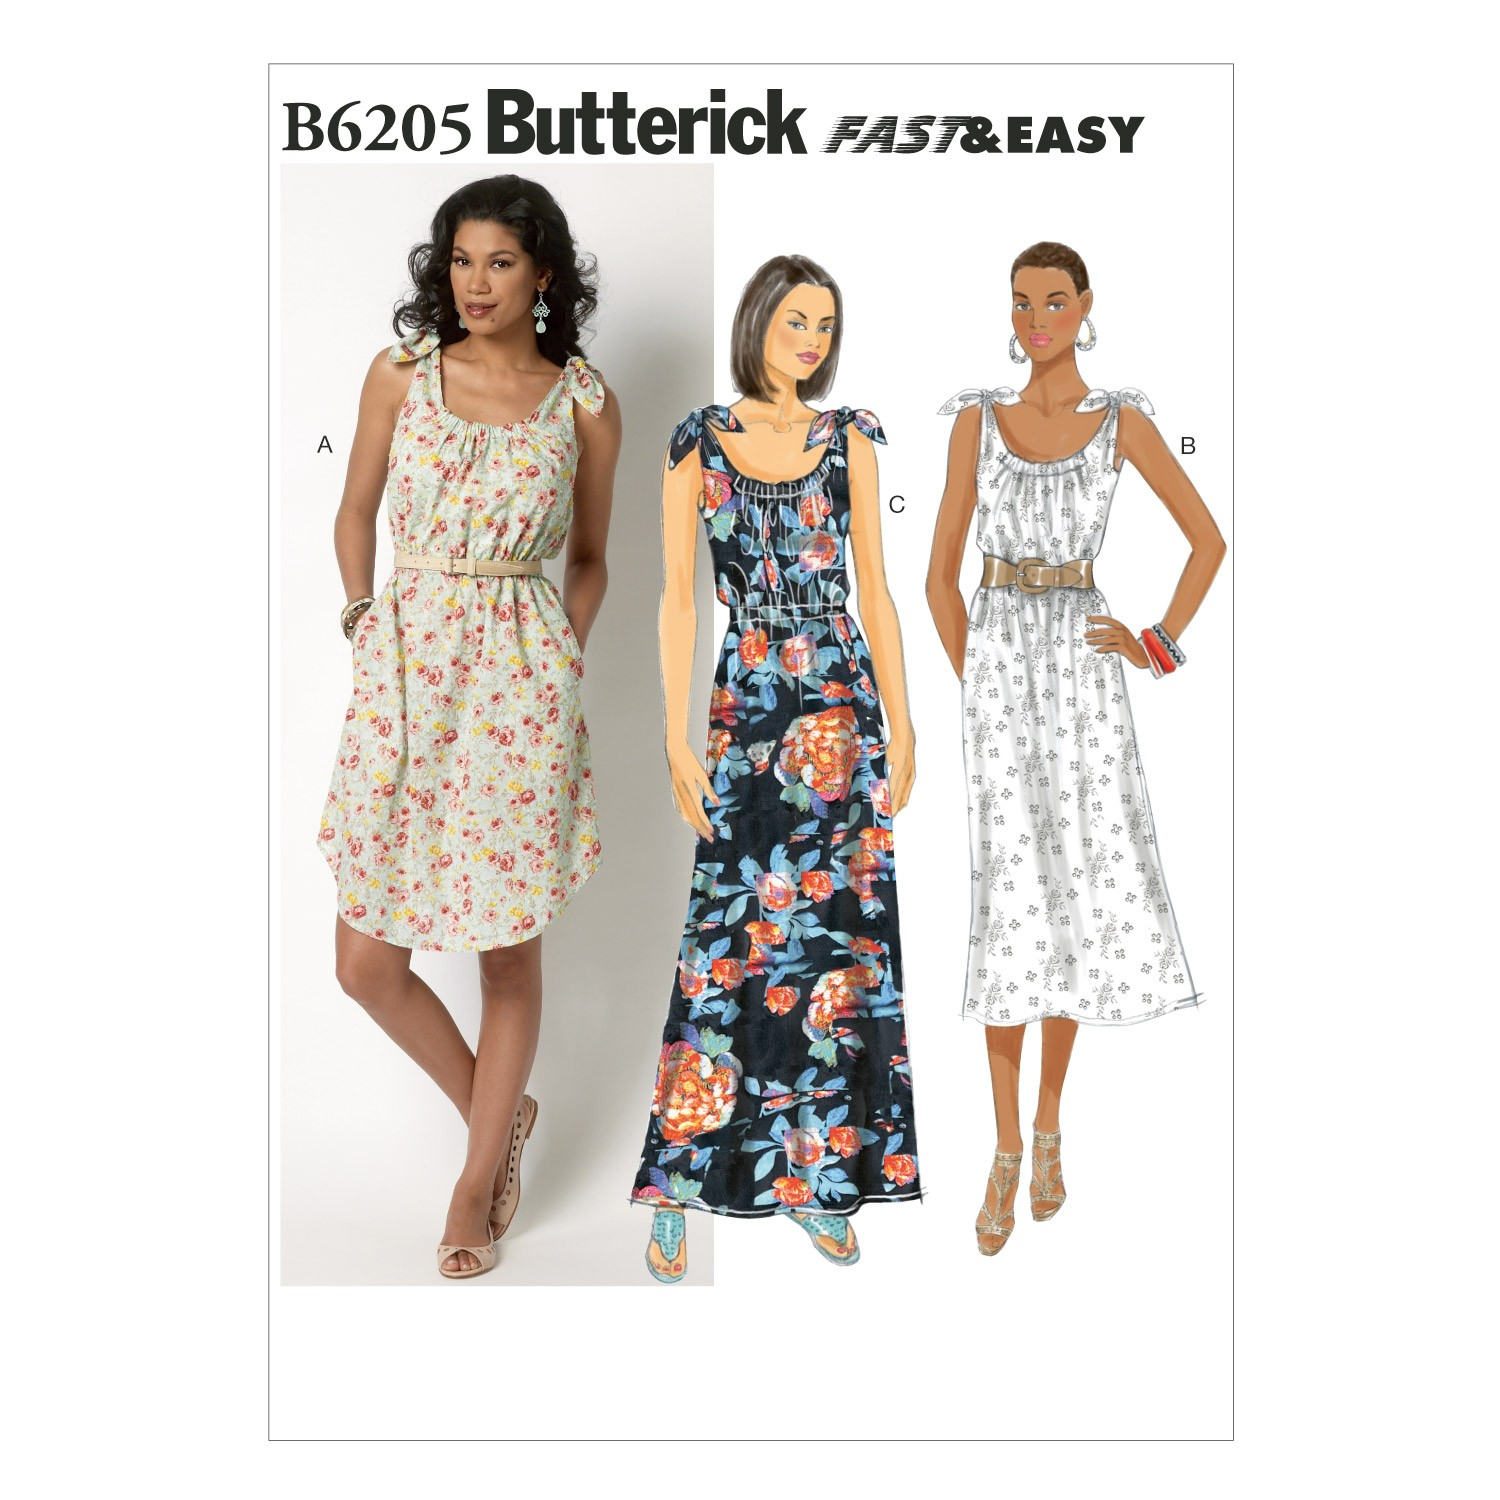 Butterick Sewing Pattern 6205 Misses' Pullover Summer Dress